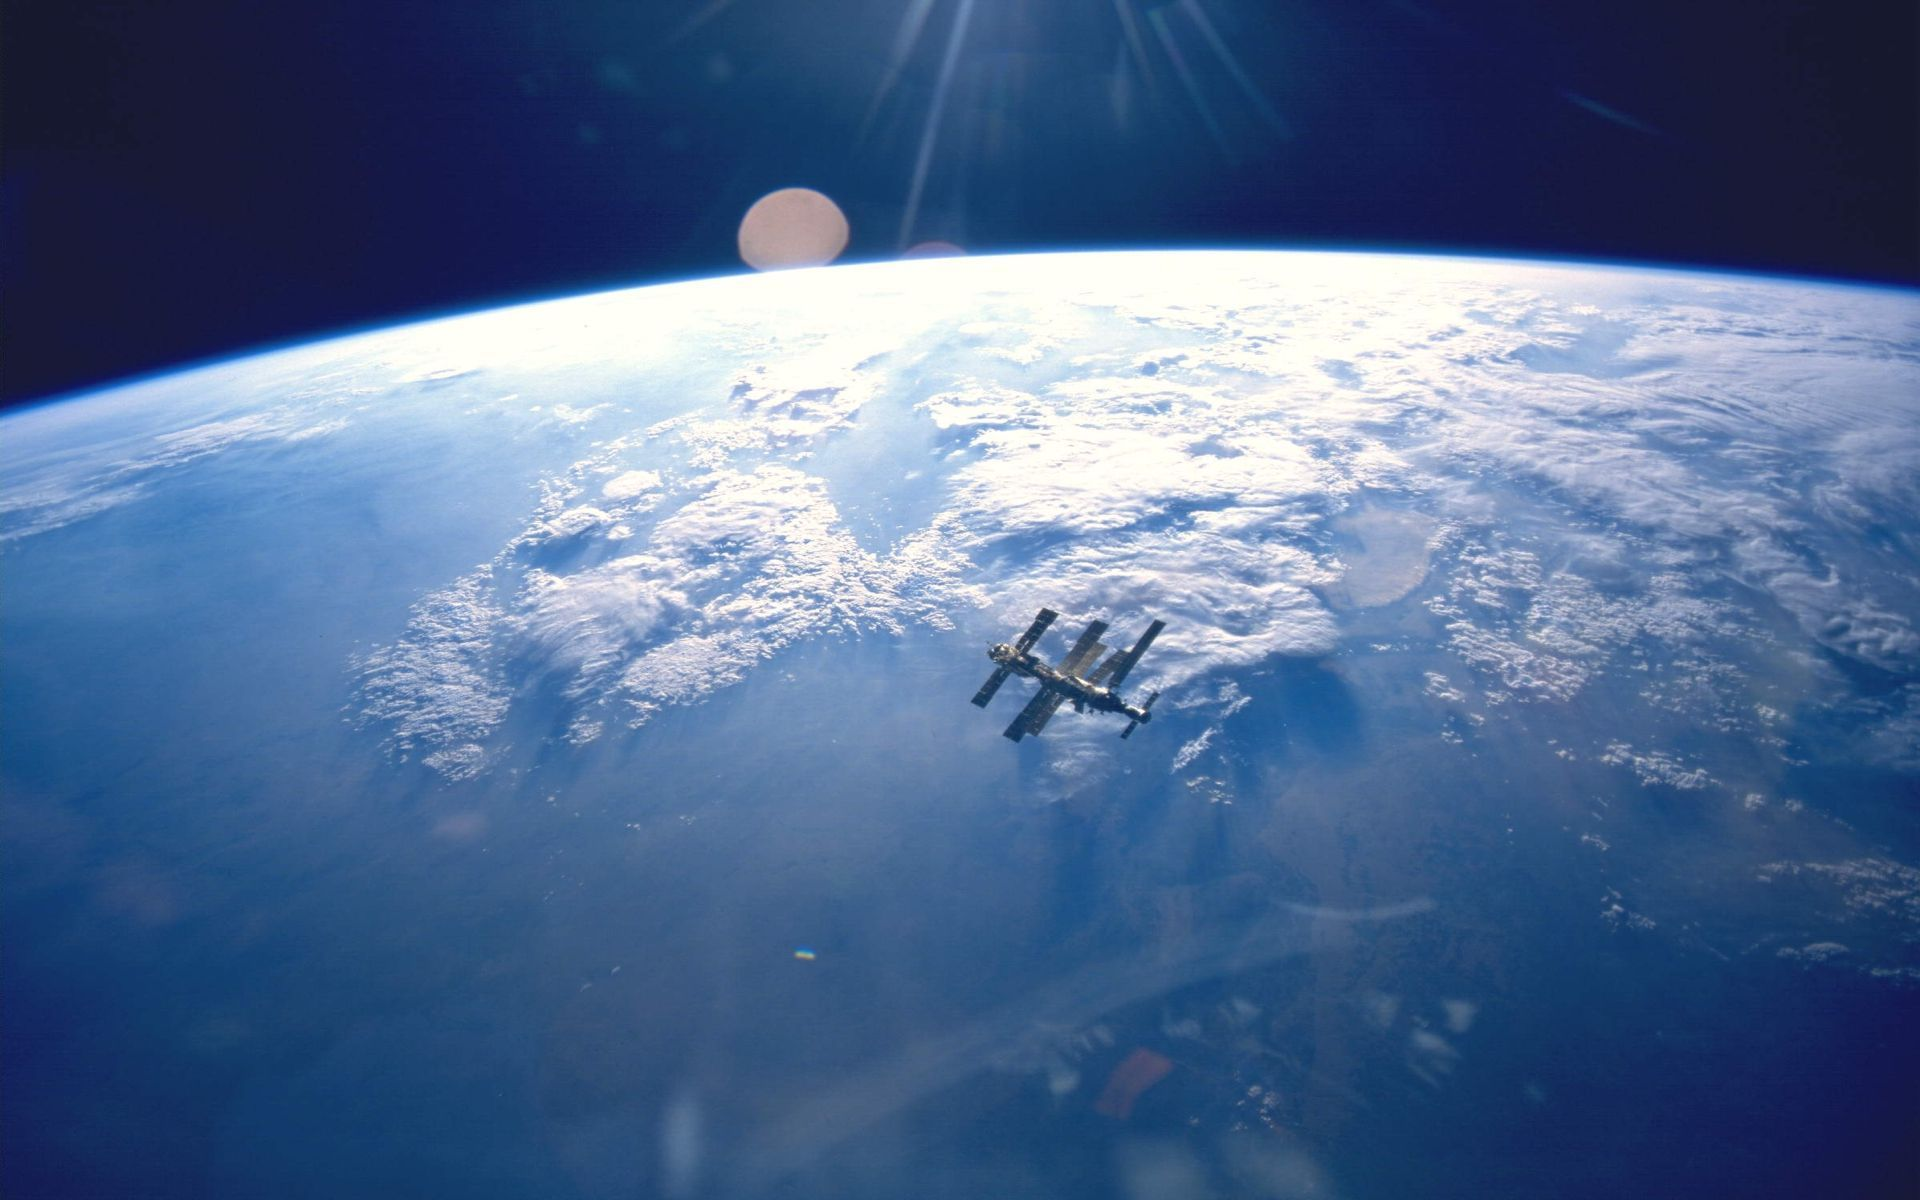 Iss Wallpapers Hd Wallpapersafari